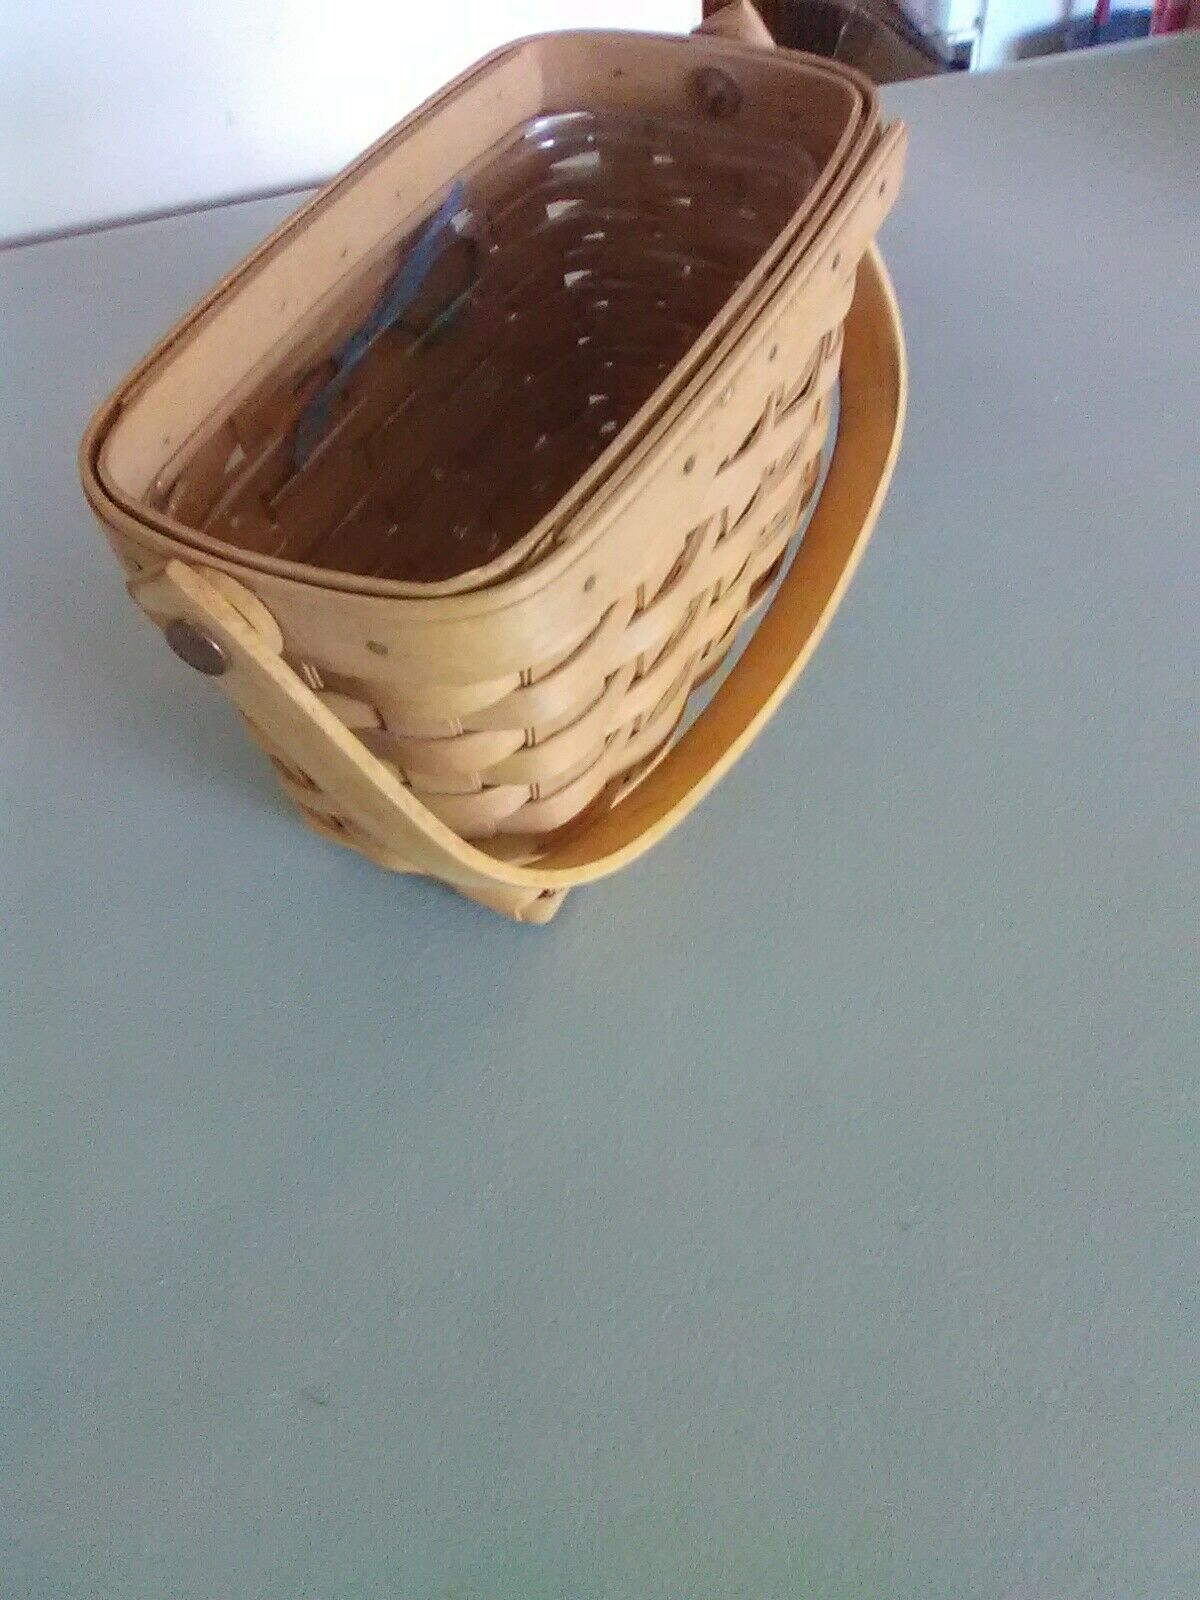 1996 Edition Longaberger Swing Handle Dresden Tour Basket w/ Plastic Liner image 3